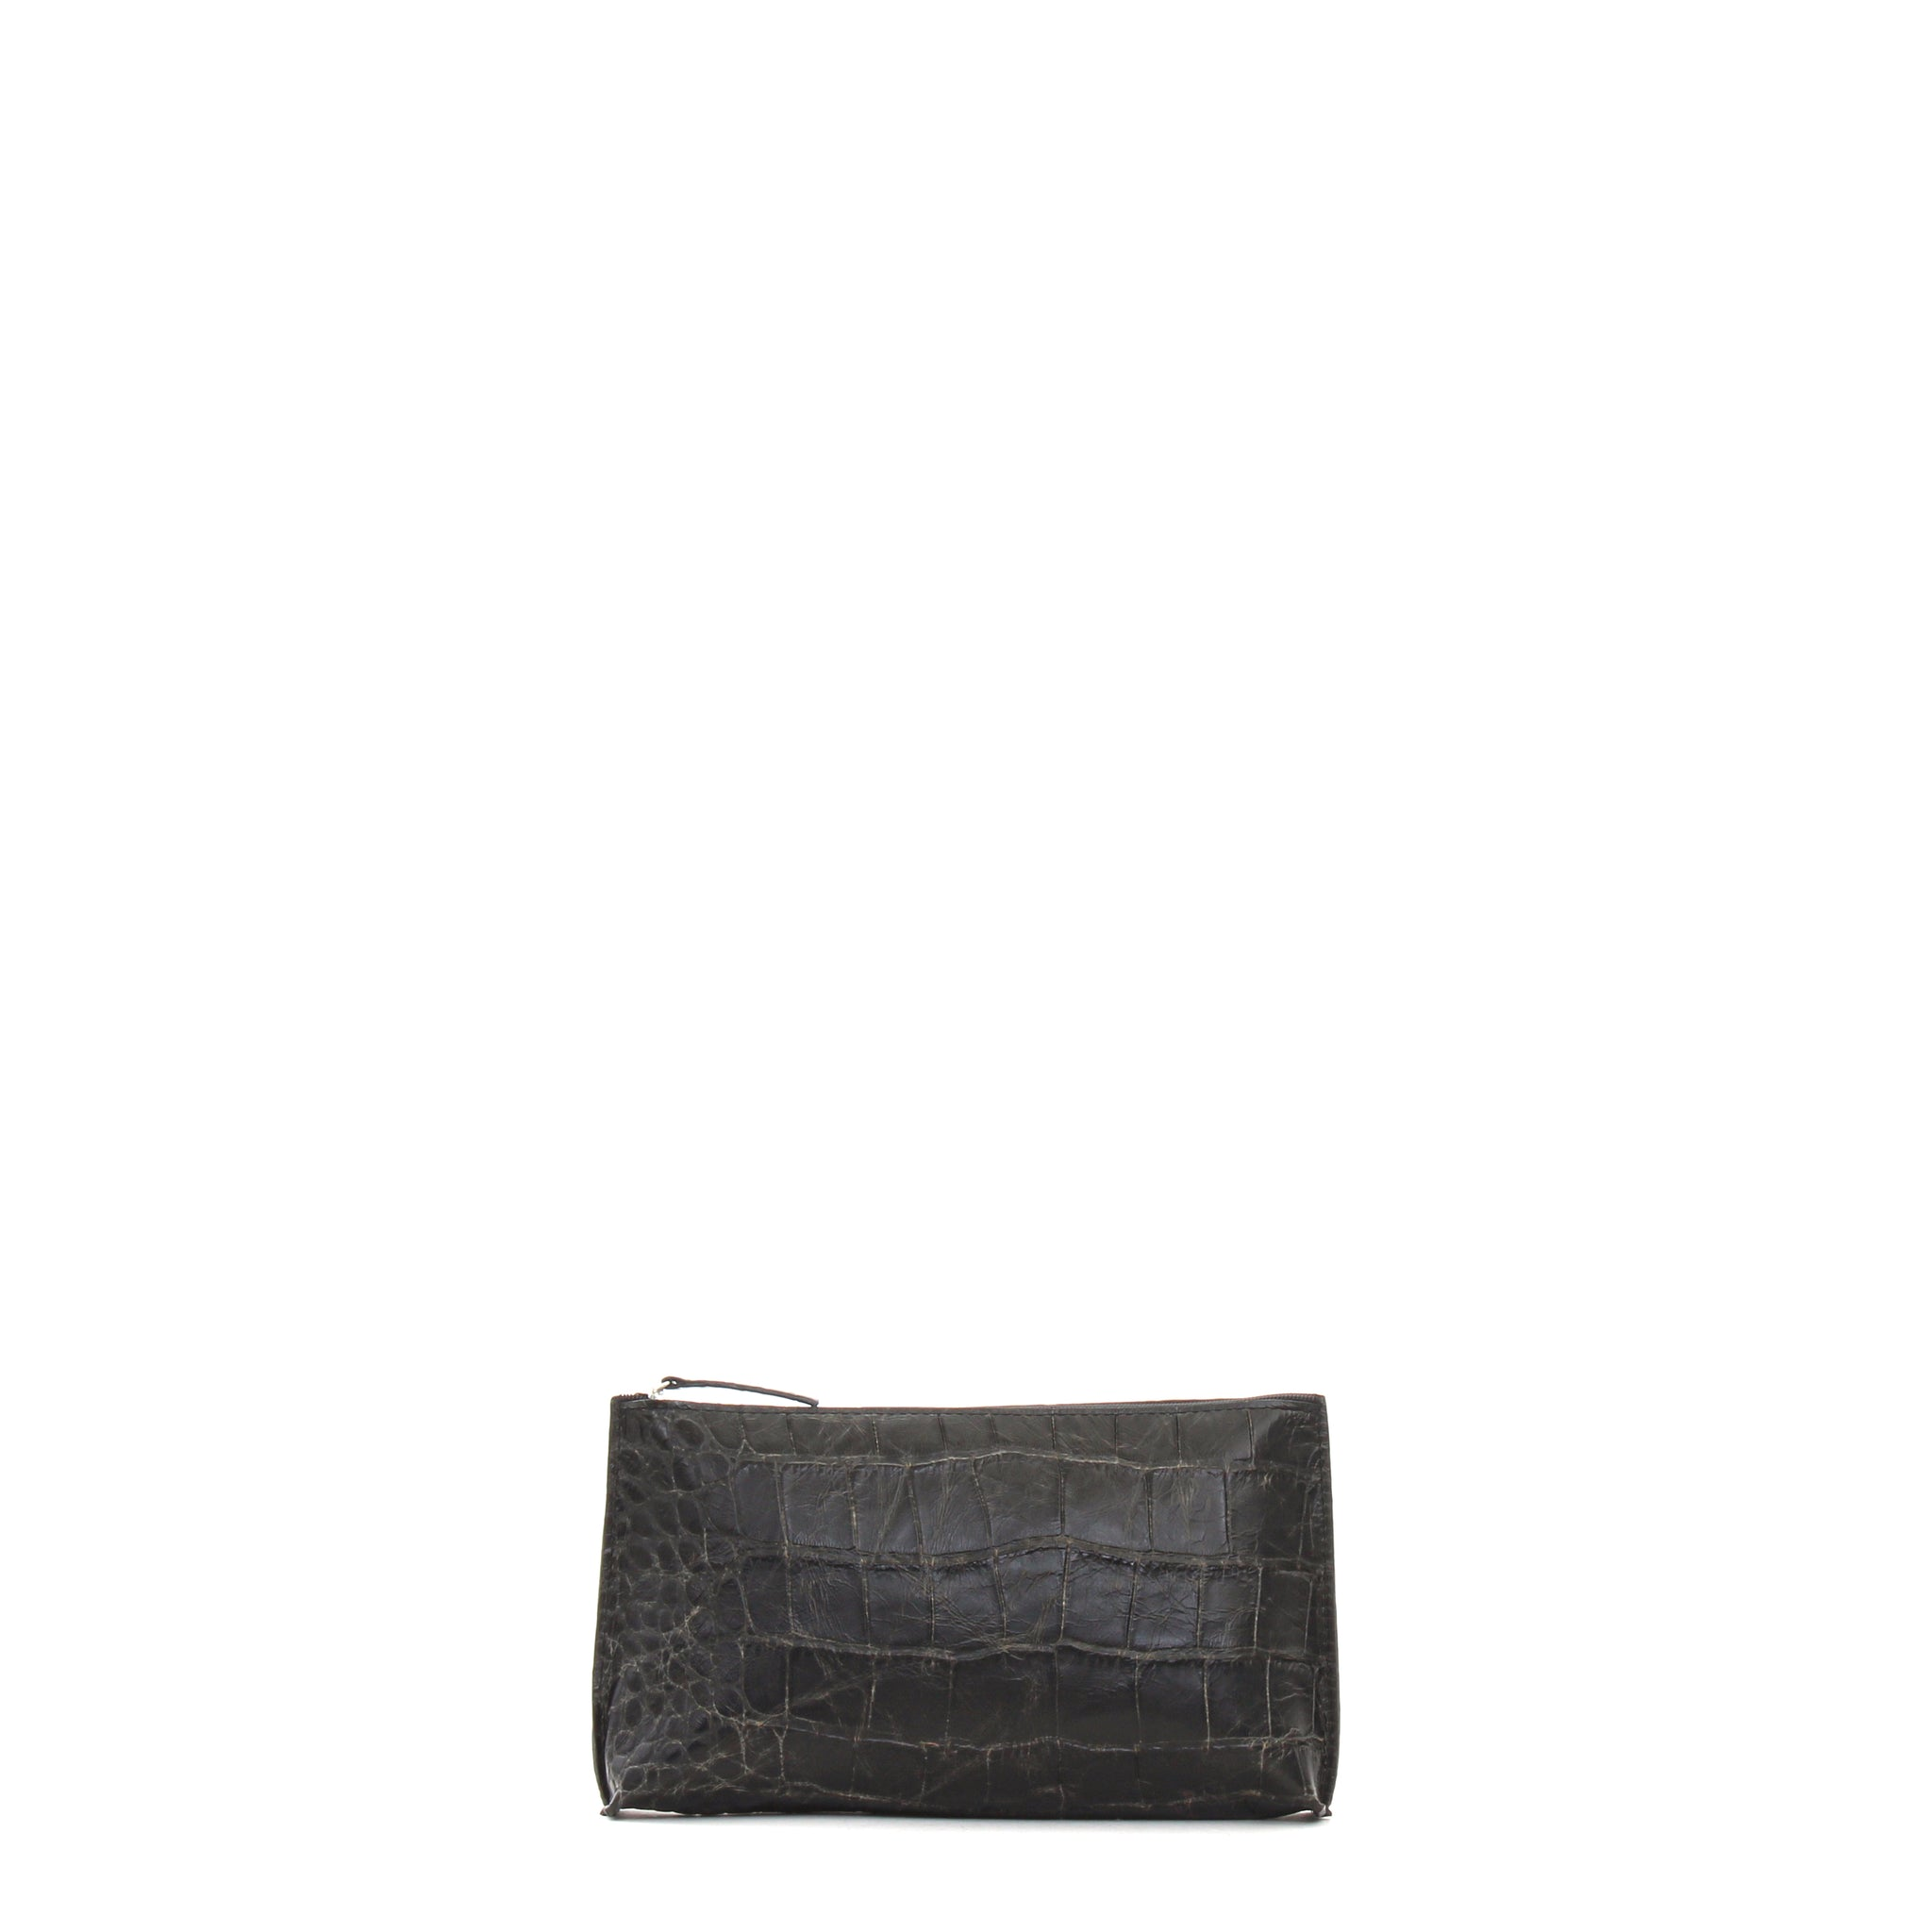 ESSENTIAL POUCH VINTAGE BLACK EMBOSSED GATOR